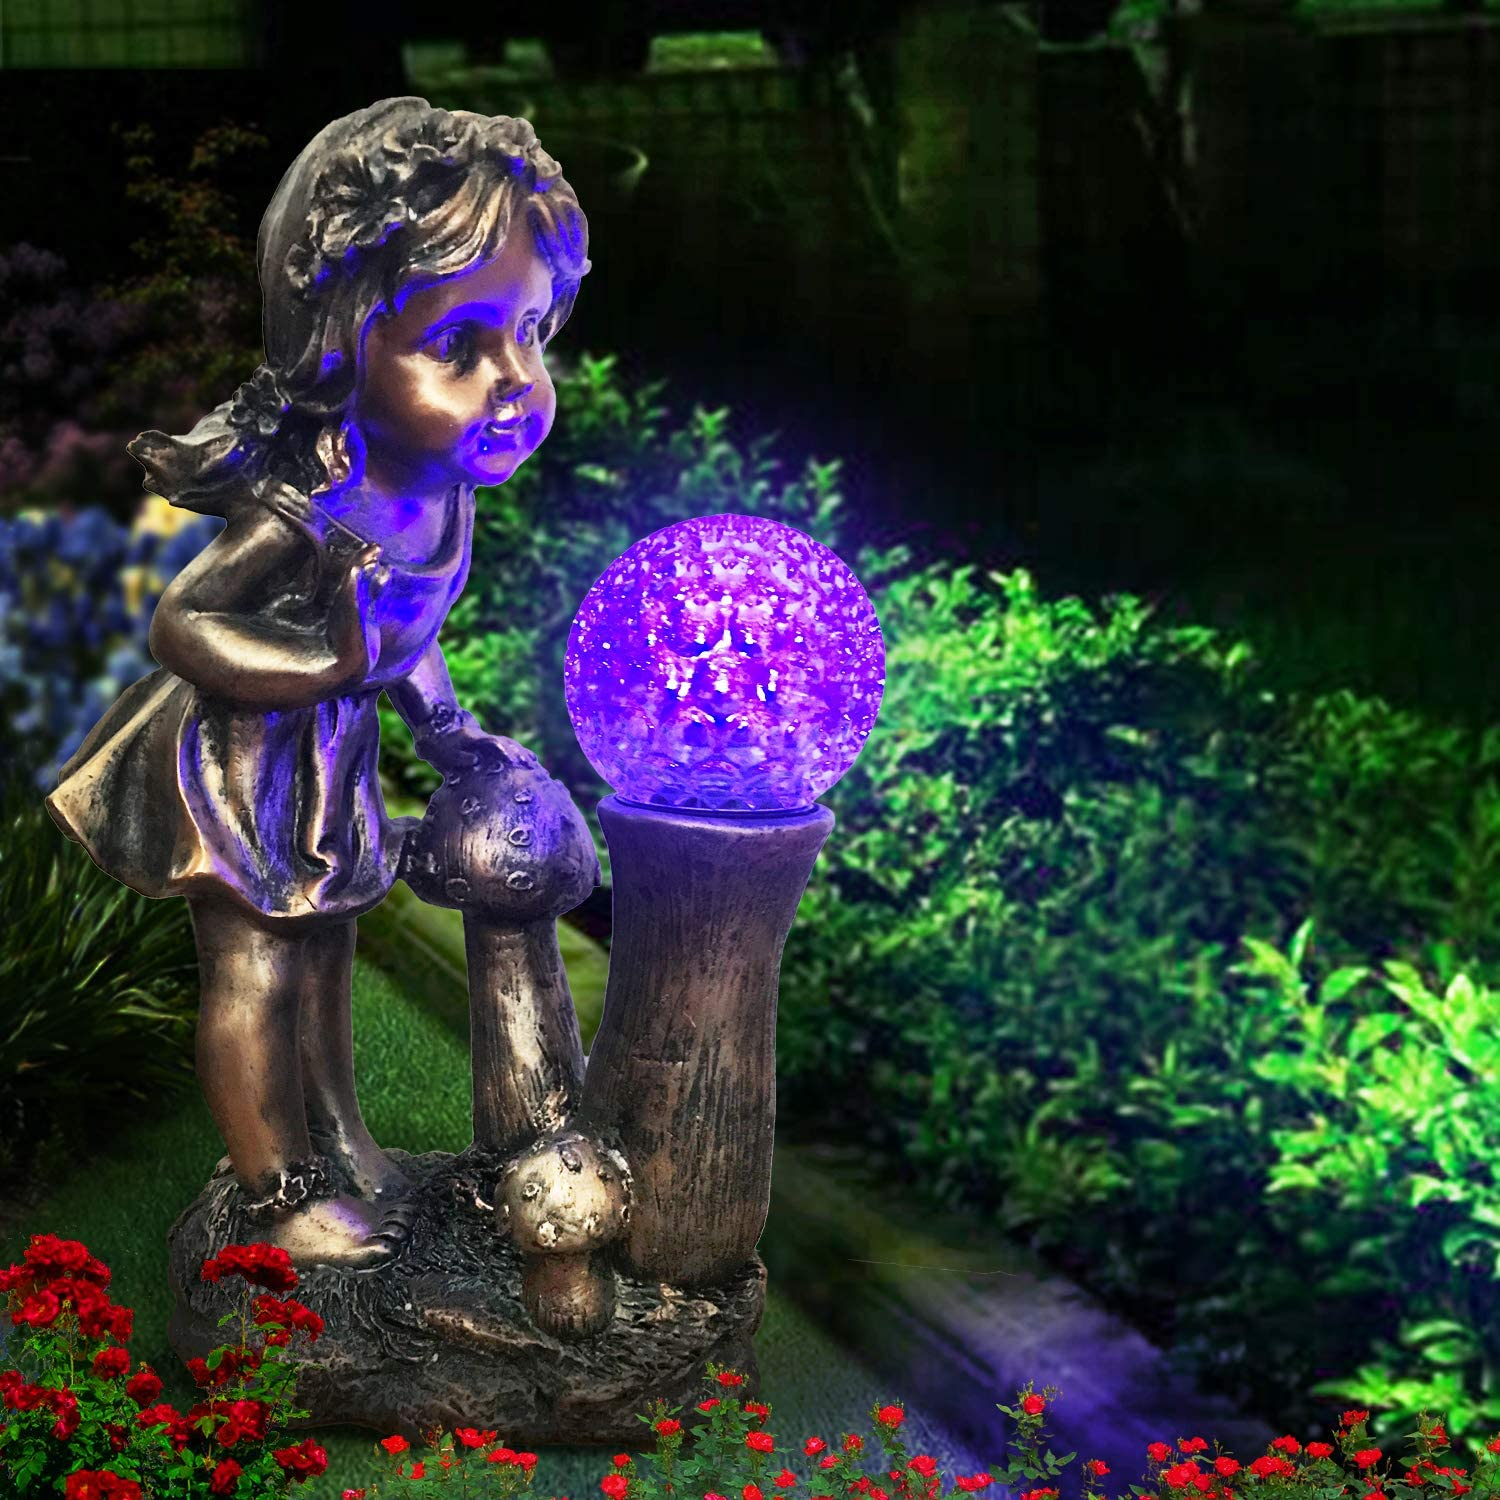 CT DISCOUNT STORE Adorable Curious Little Girl Looking at The Spinning Color Changing Gazing Ball (Ball Rotates As The Color Change) Outdoor Garden Decoration Statue